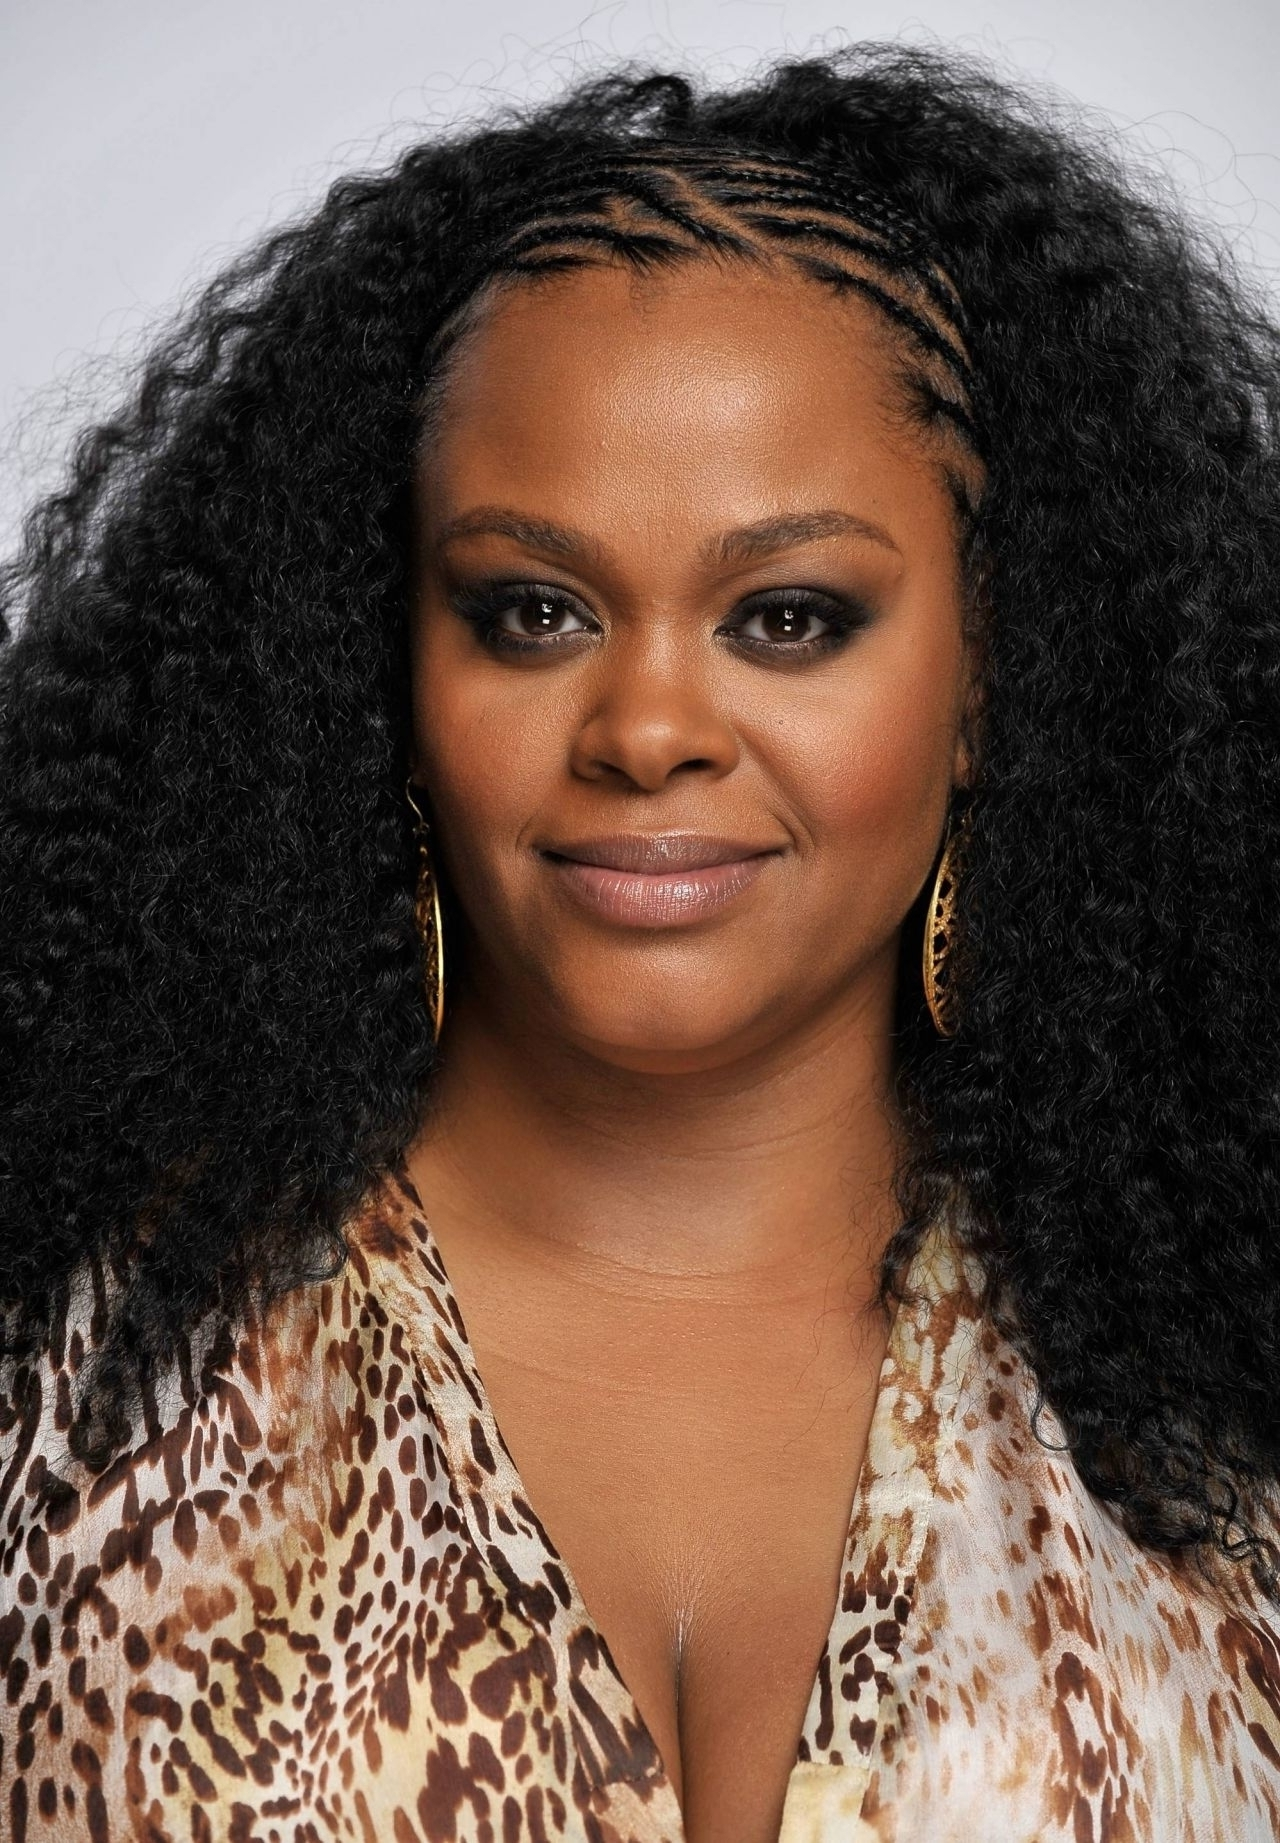 Chic Braided Hairstyles For African American About African American Pertaining To Well Known Braided Hairstyles For Afro Hair (View 4 of 15)